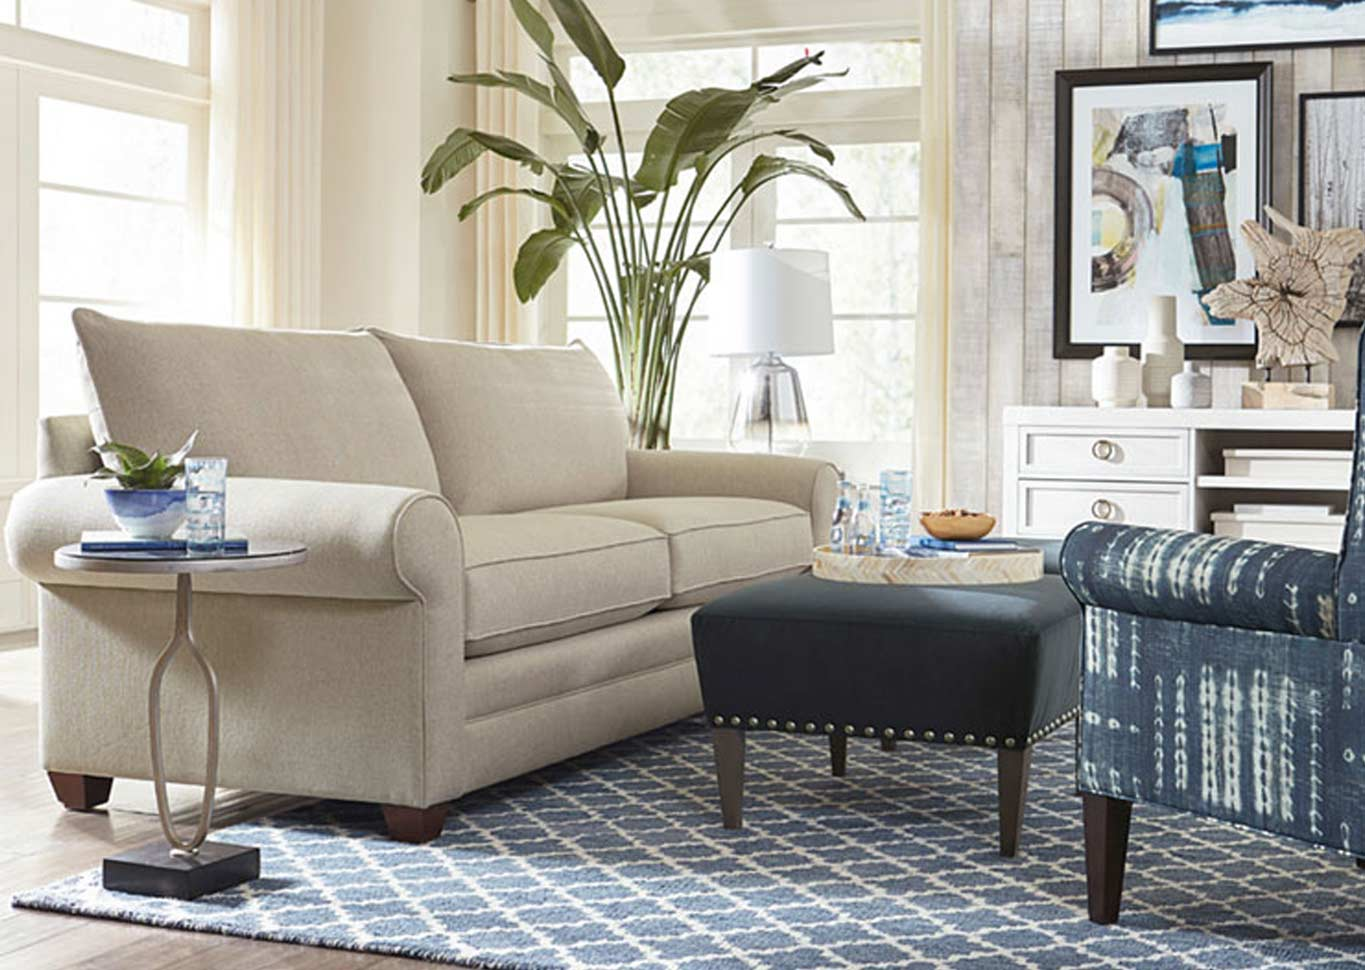 Alexander Collection by Basset Furniture